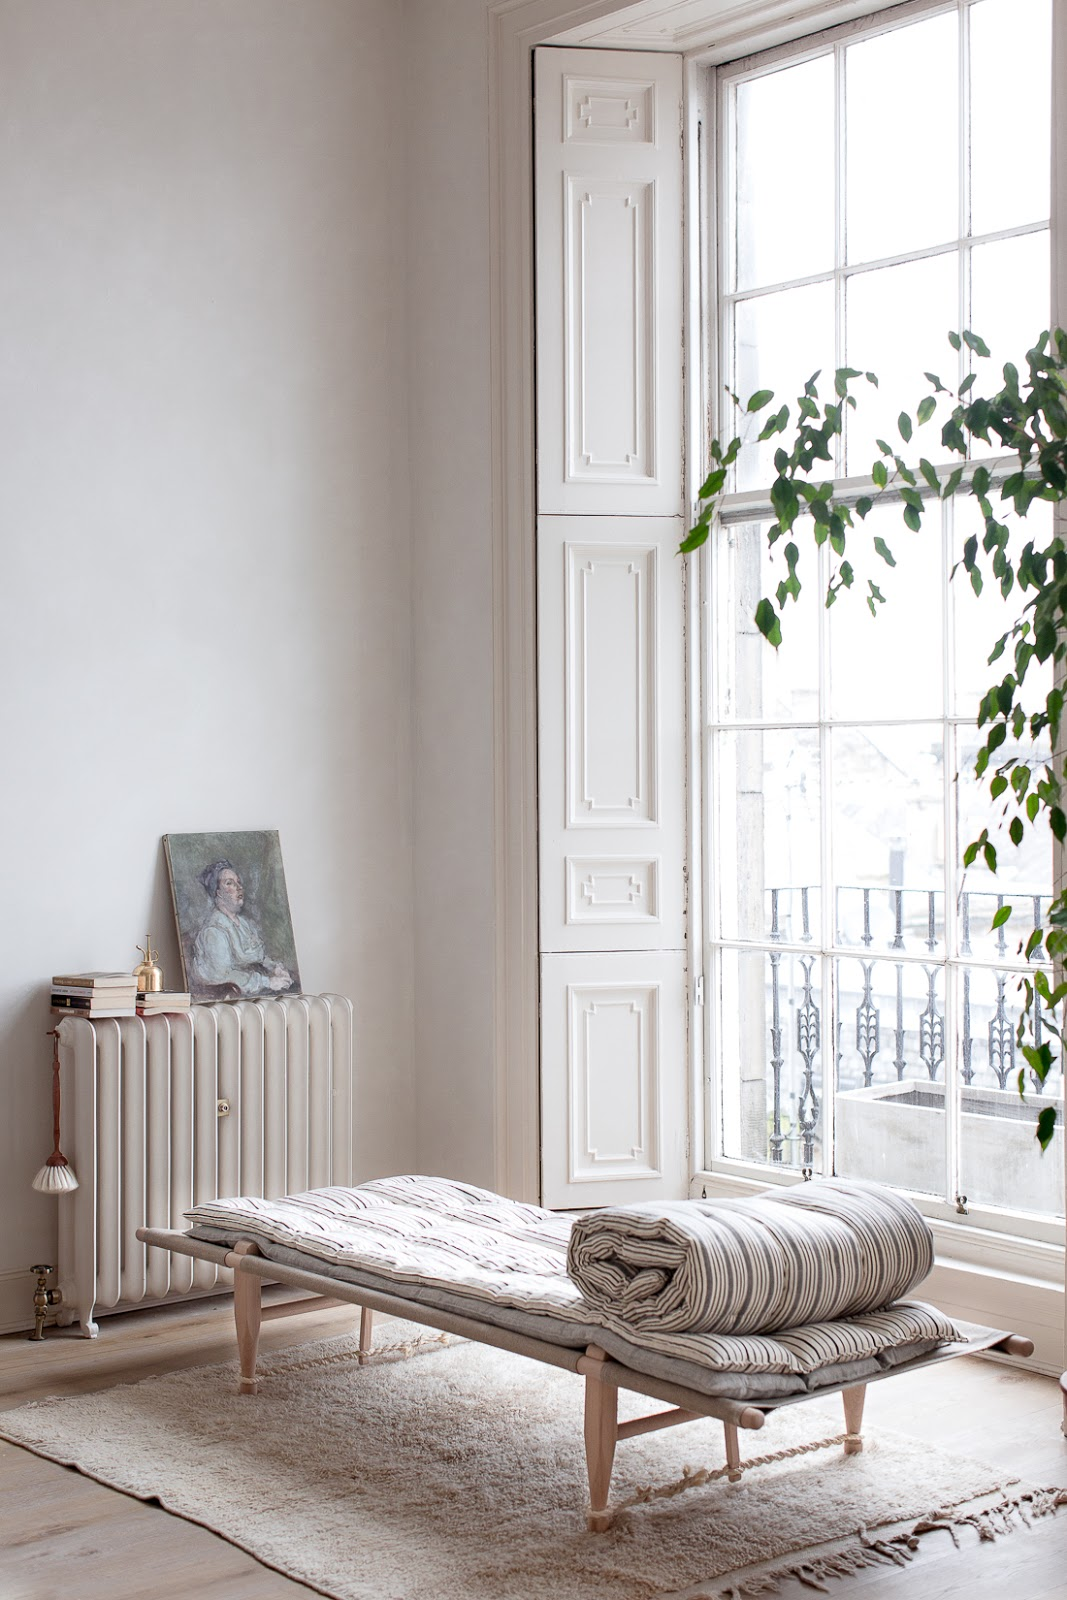 ilaria fatone - a comforting and minimal home - the daybed by the window